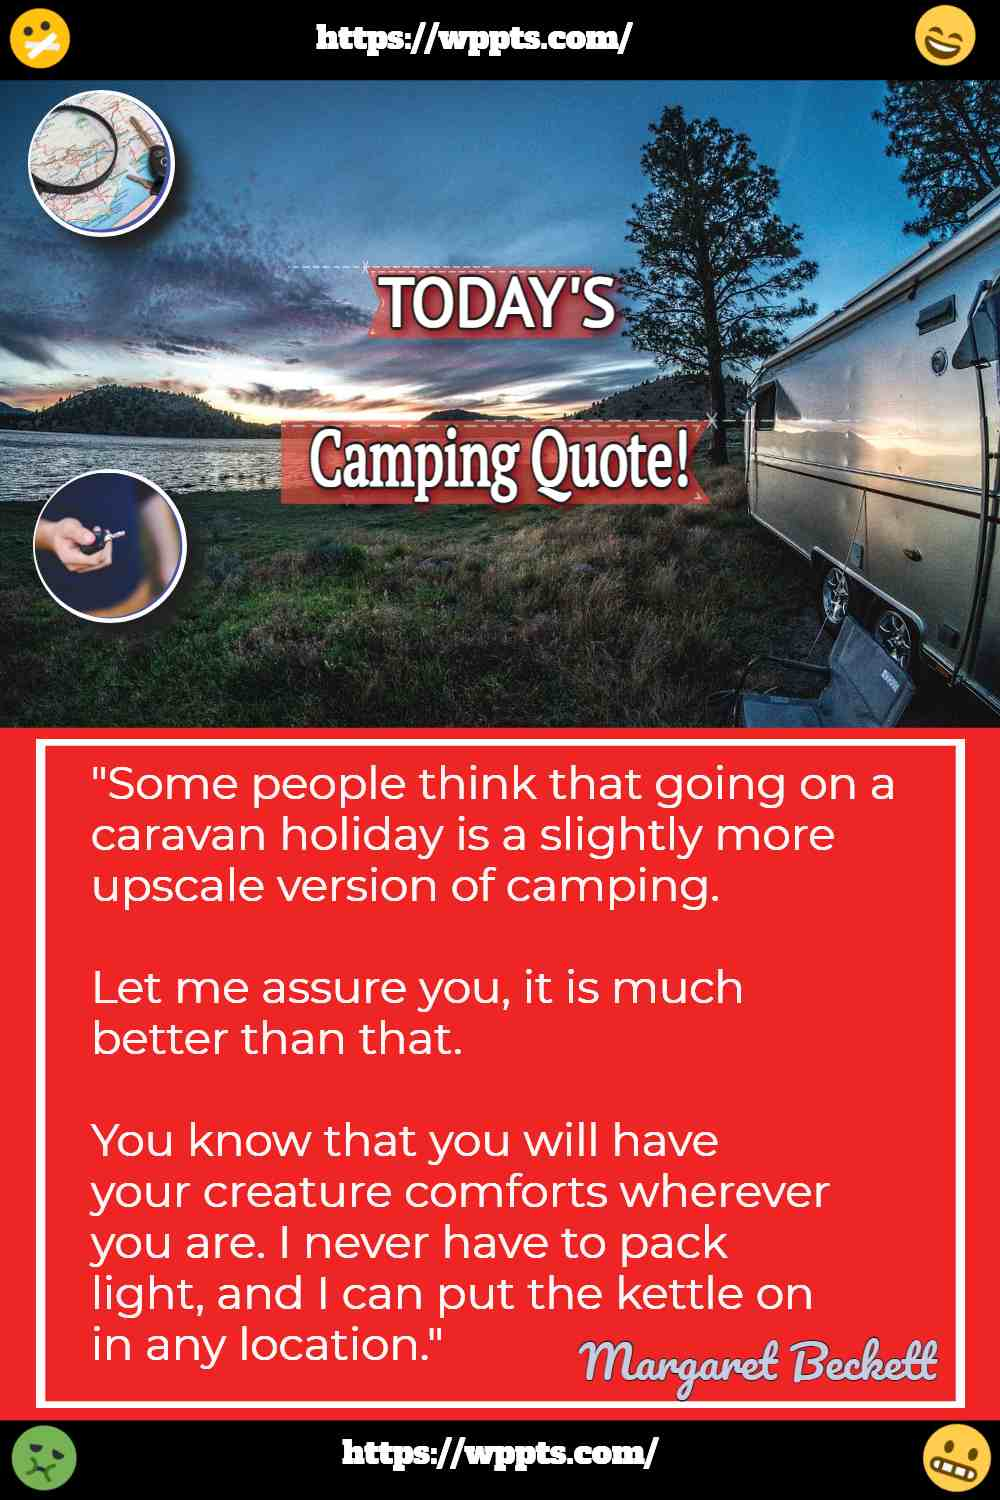 Image shows today's camping quote.